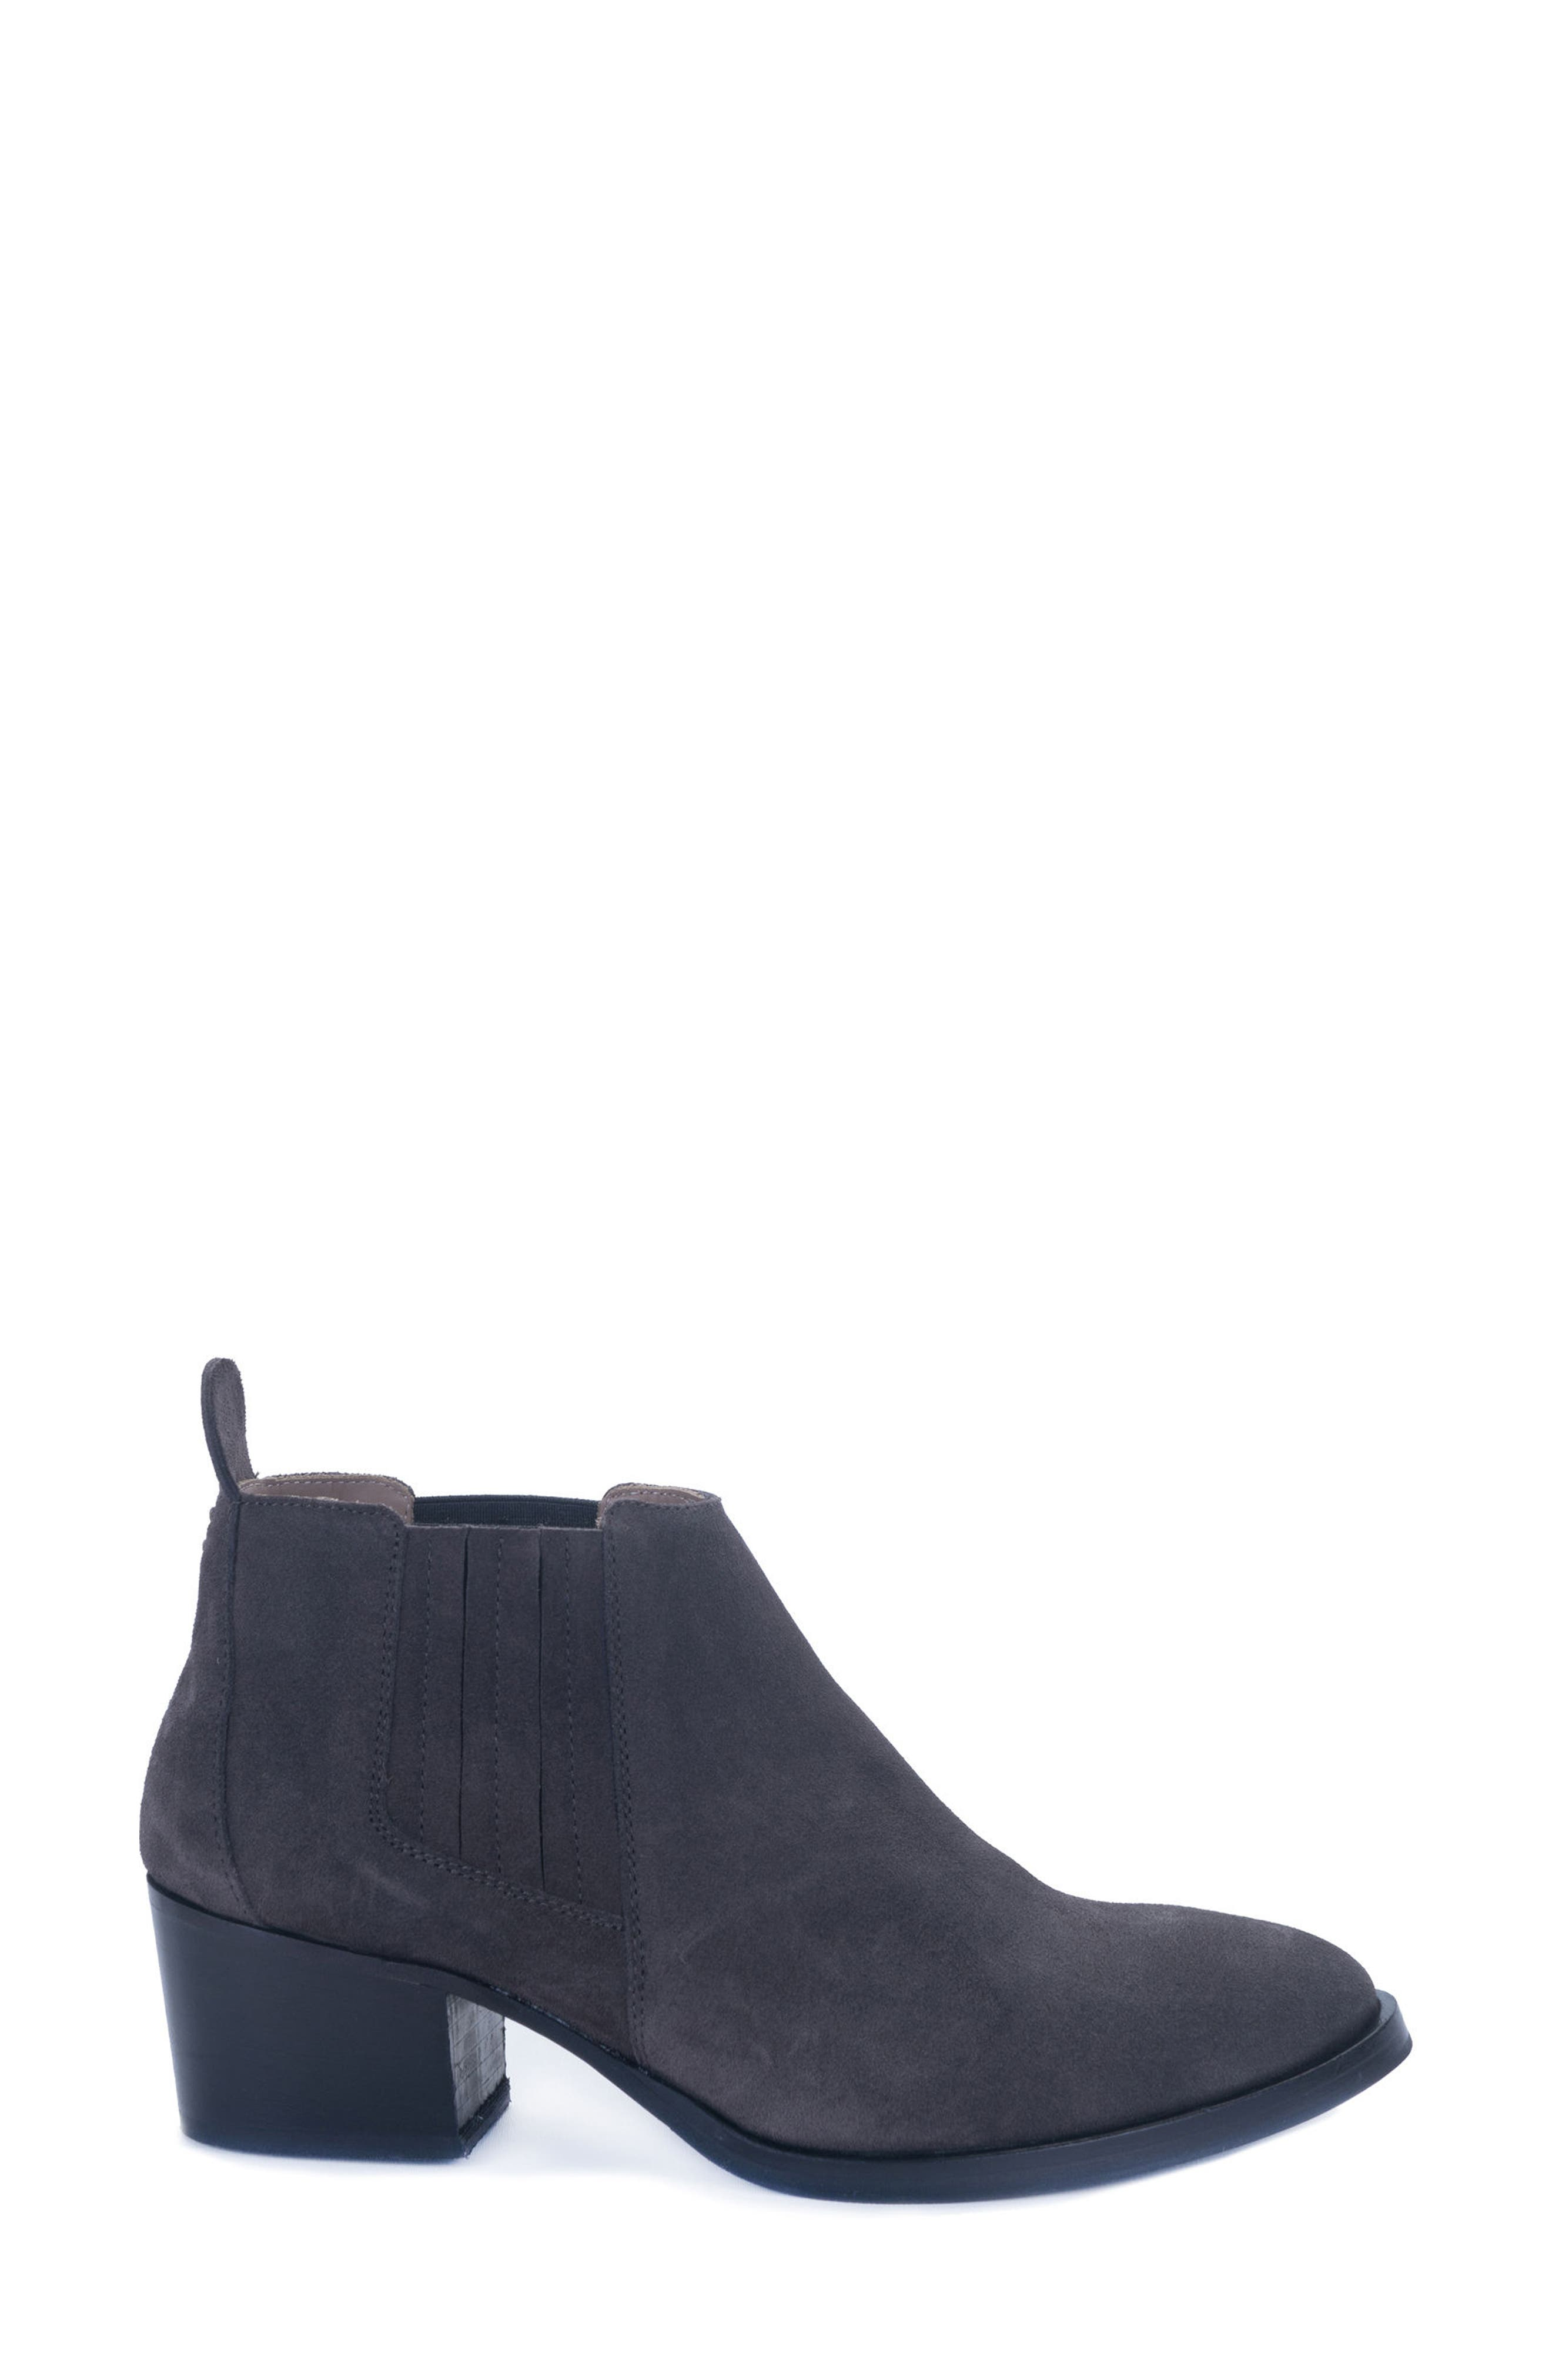 Corsini Water-Resistant Pull On Bootie,                             Alternate thumbnail 3, color,                             033